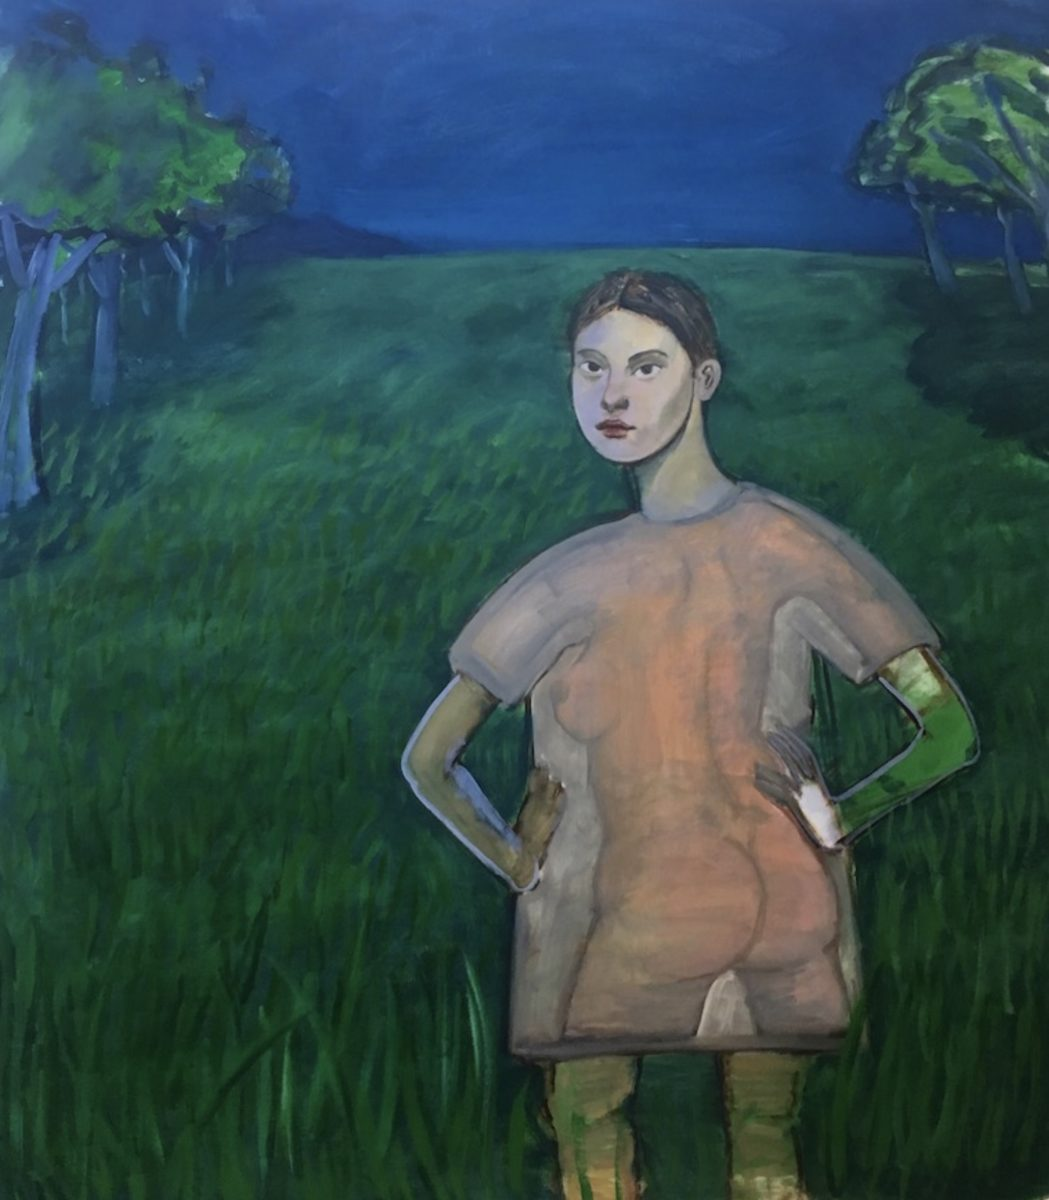 Bambou Gili, Untitled (girl in field), 2019.  Image courtesy of the artist and Arsenal Contemporary Art, New York